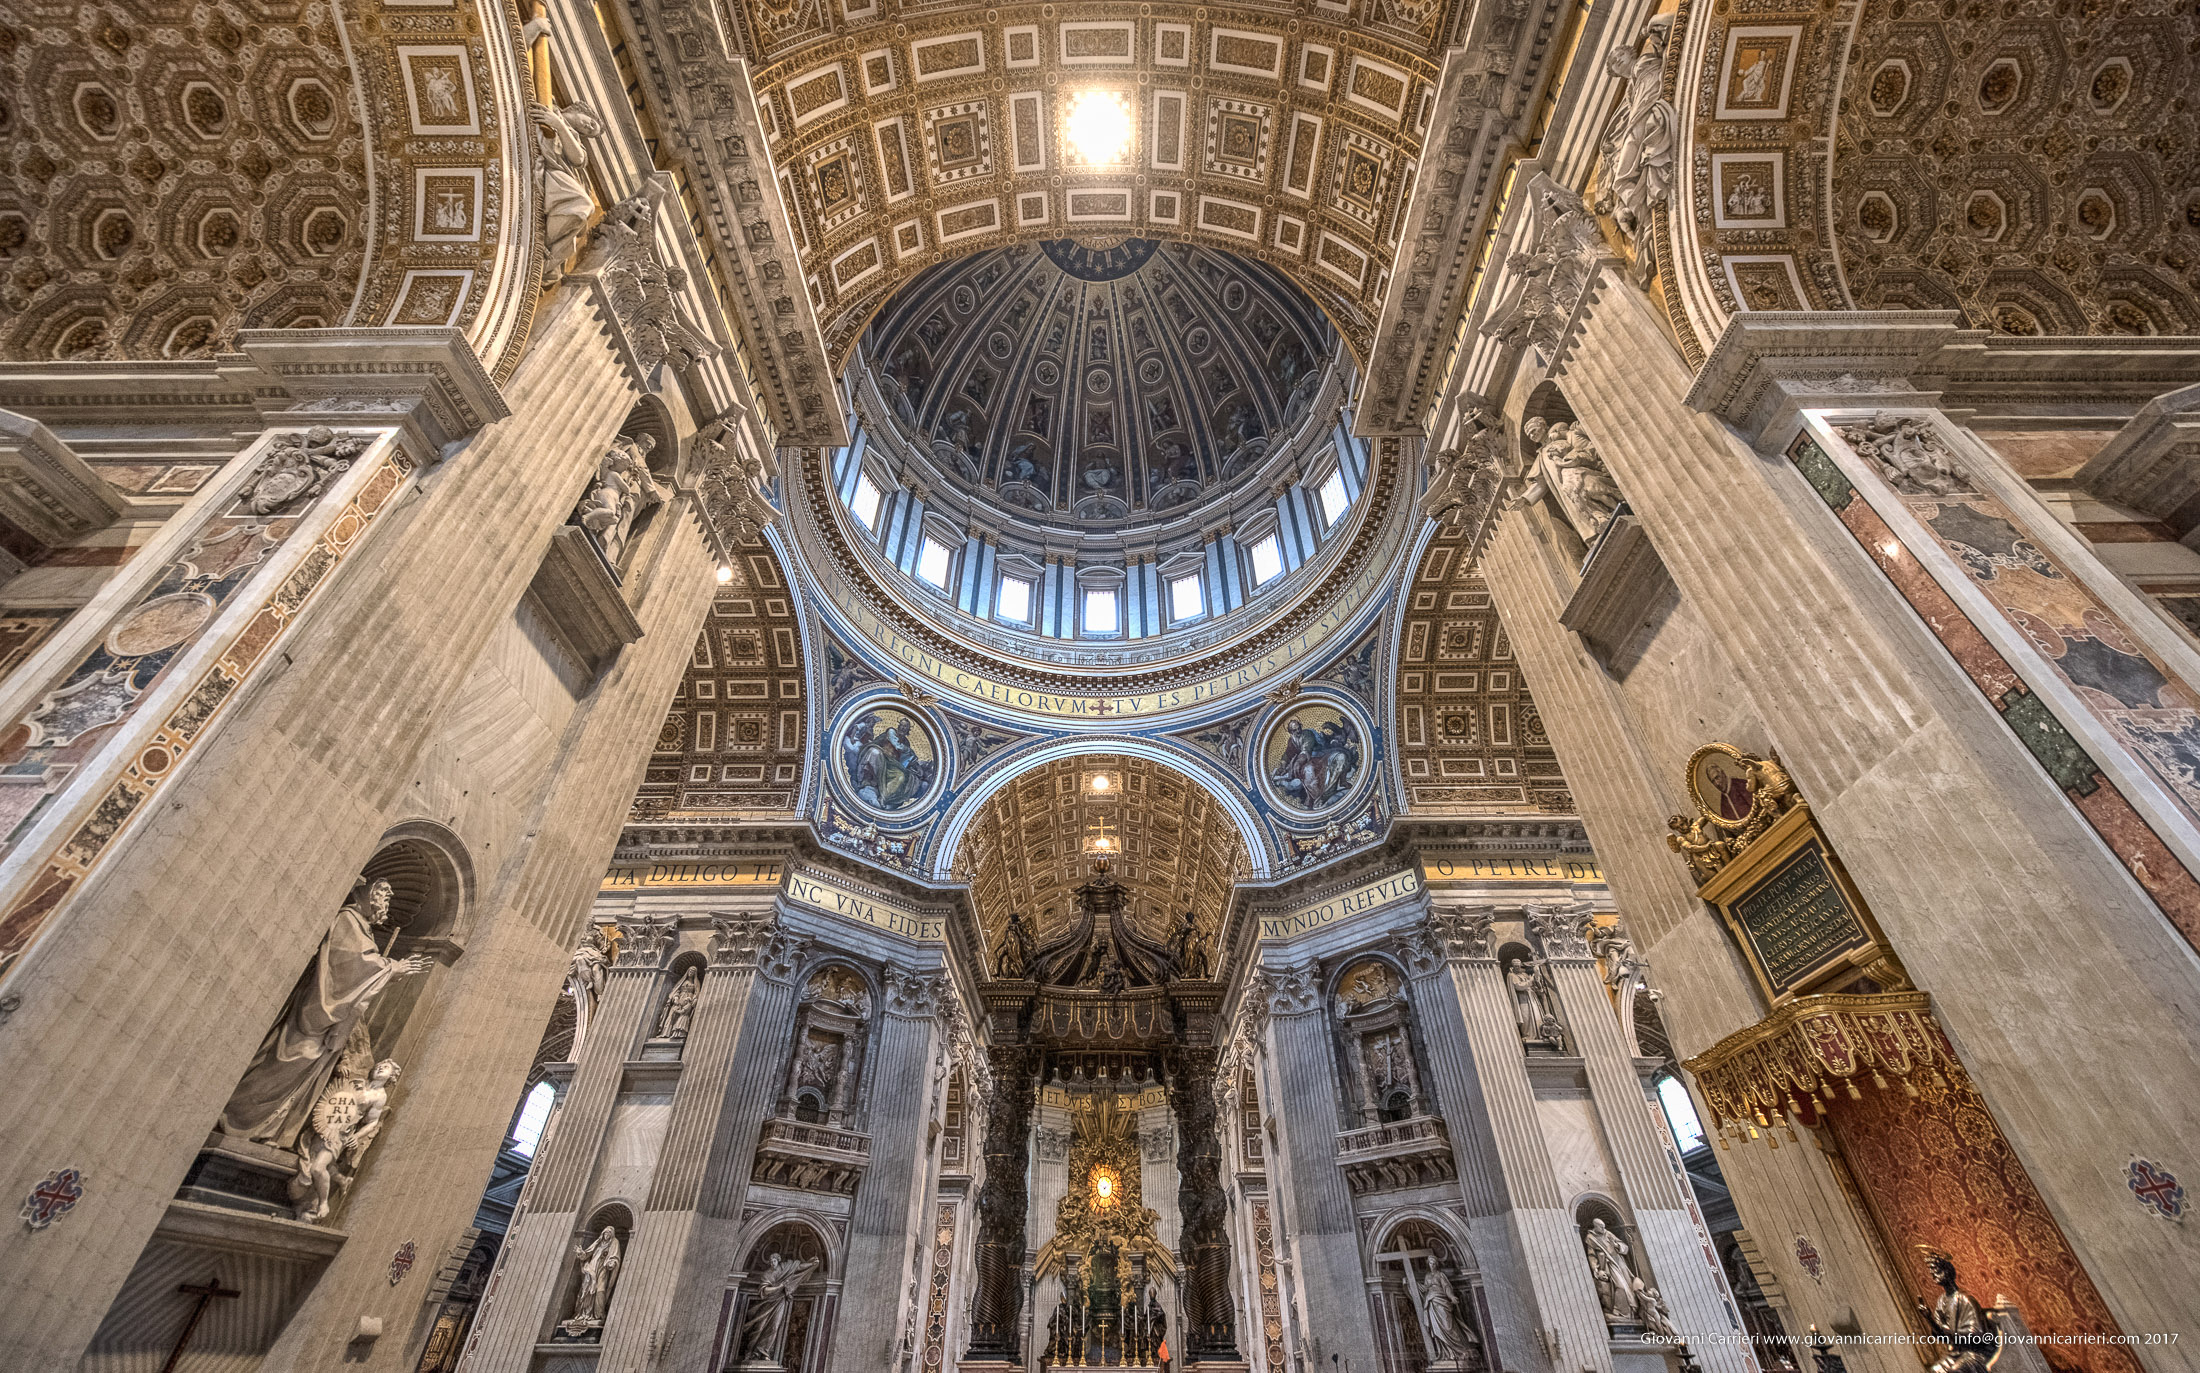 Inside St. Peter's Basilica and the dome